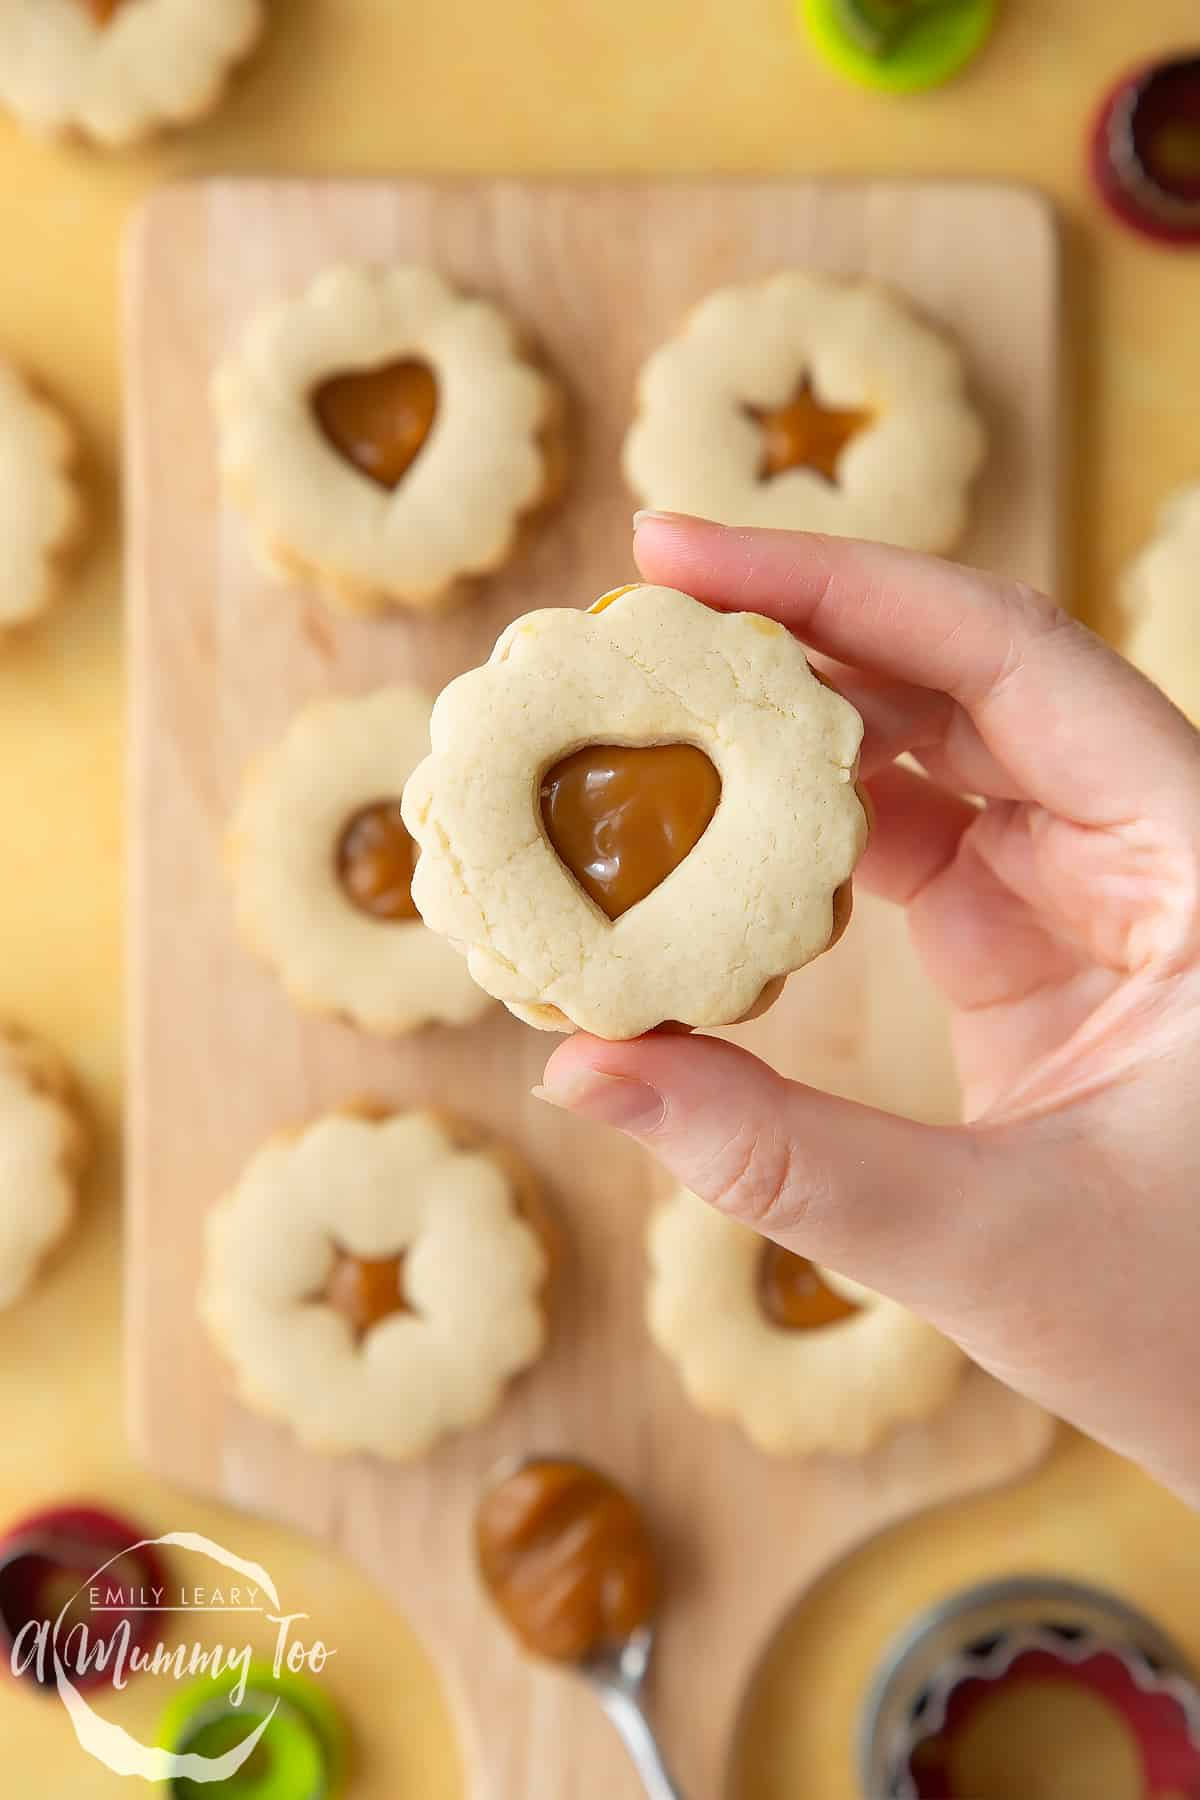 Hand holding a caramel sandwich cookies with additional caramel sandwich cookies in the background.